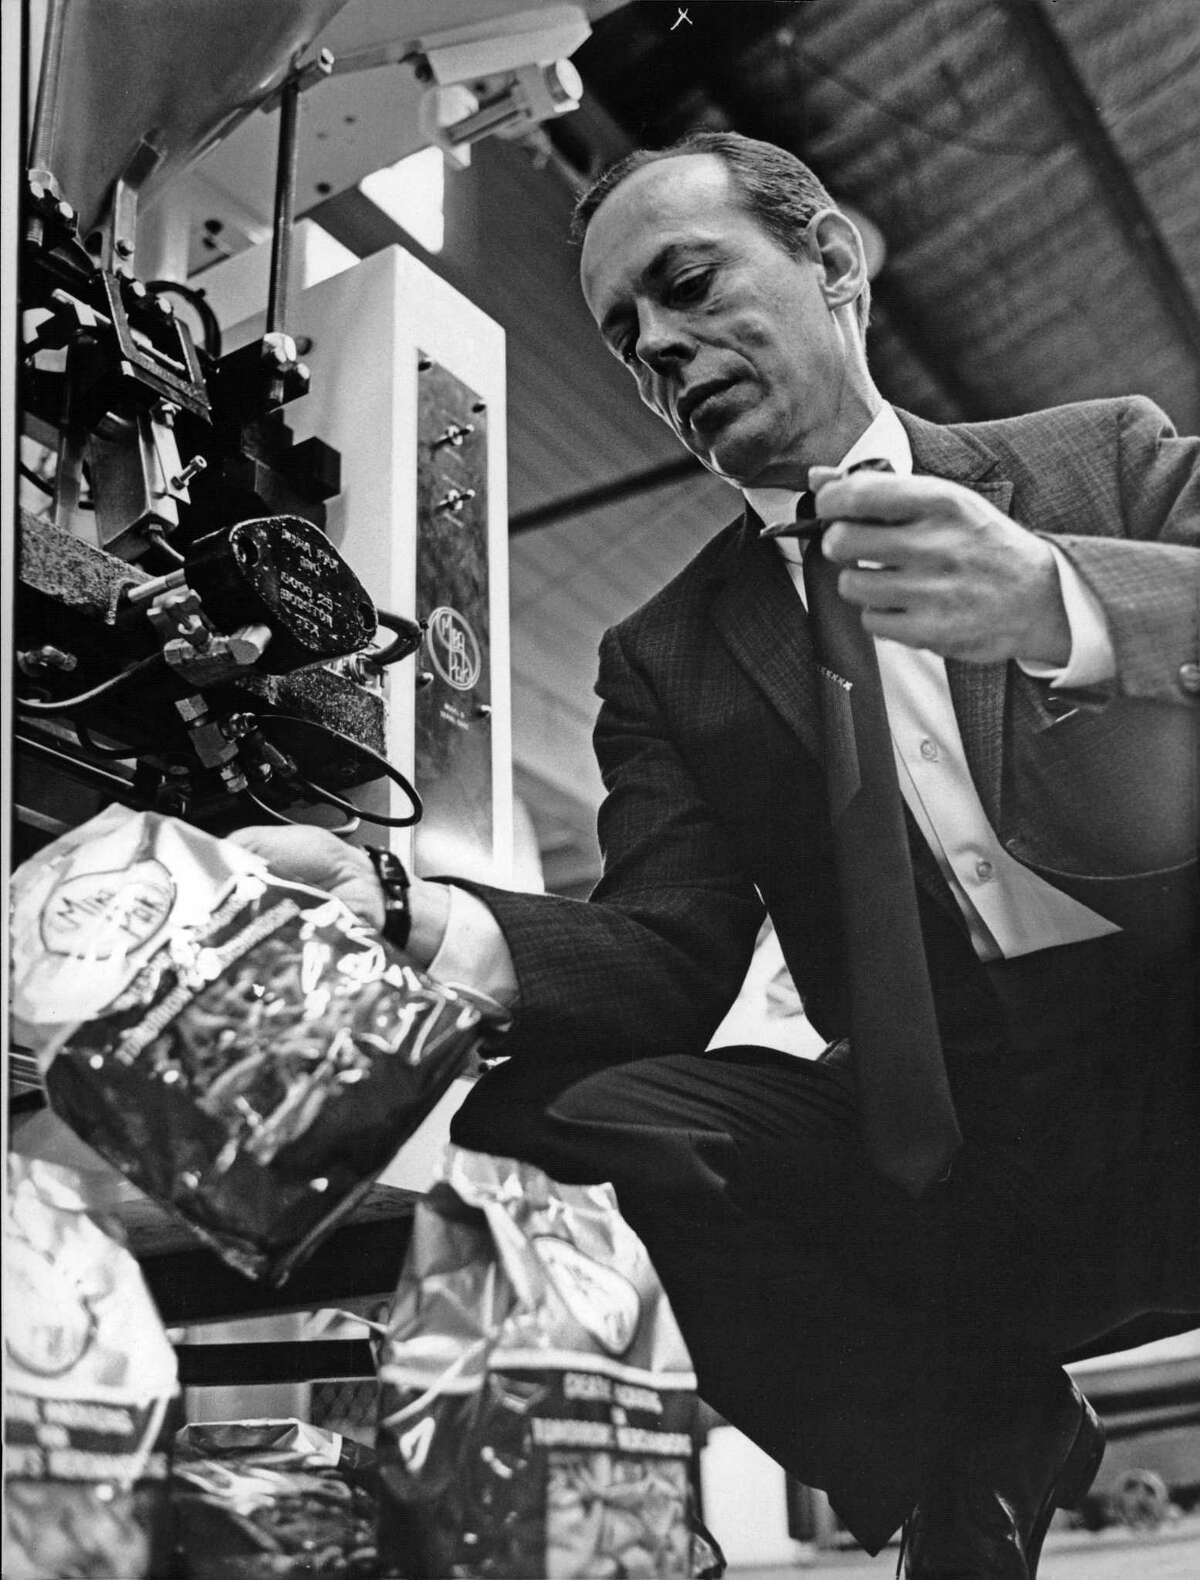 10/1965 - Inventor William C. Leasure holds a sample bag made and filled by the automatic packaging machine his company, Mira-Pak Inc., manufactures. The new method of packaging snack foods has enabled Mira-Pak to sell the machinery world-wide.